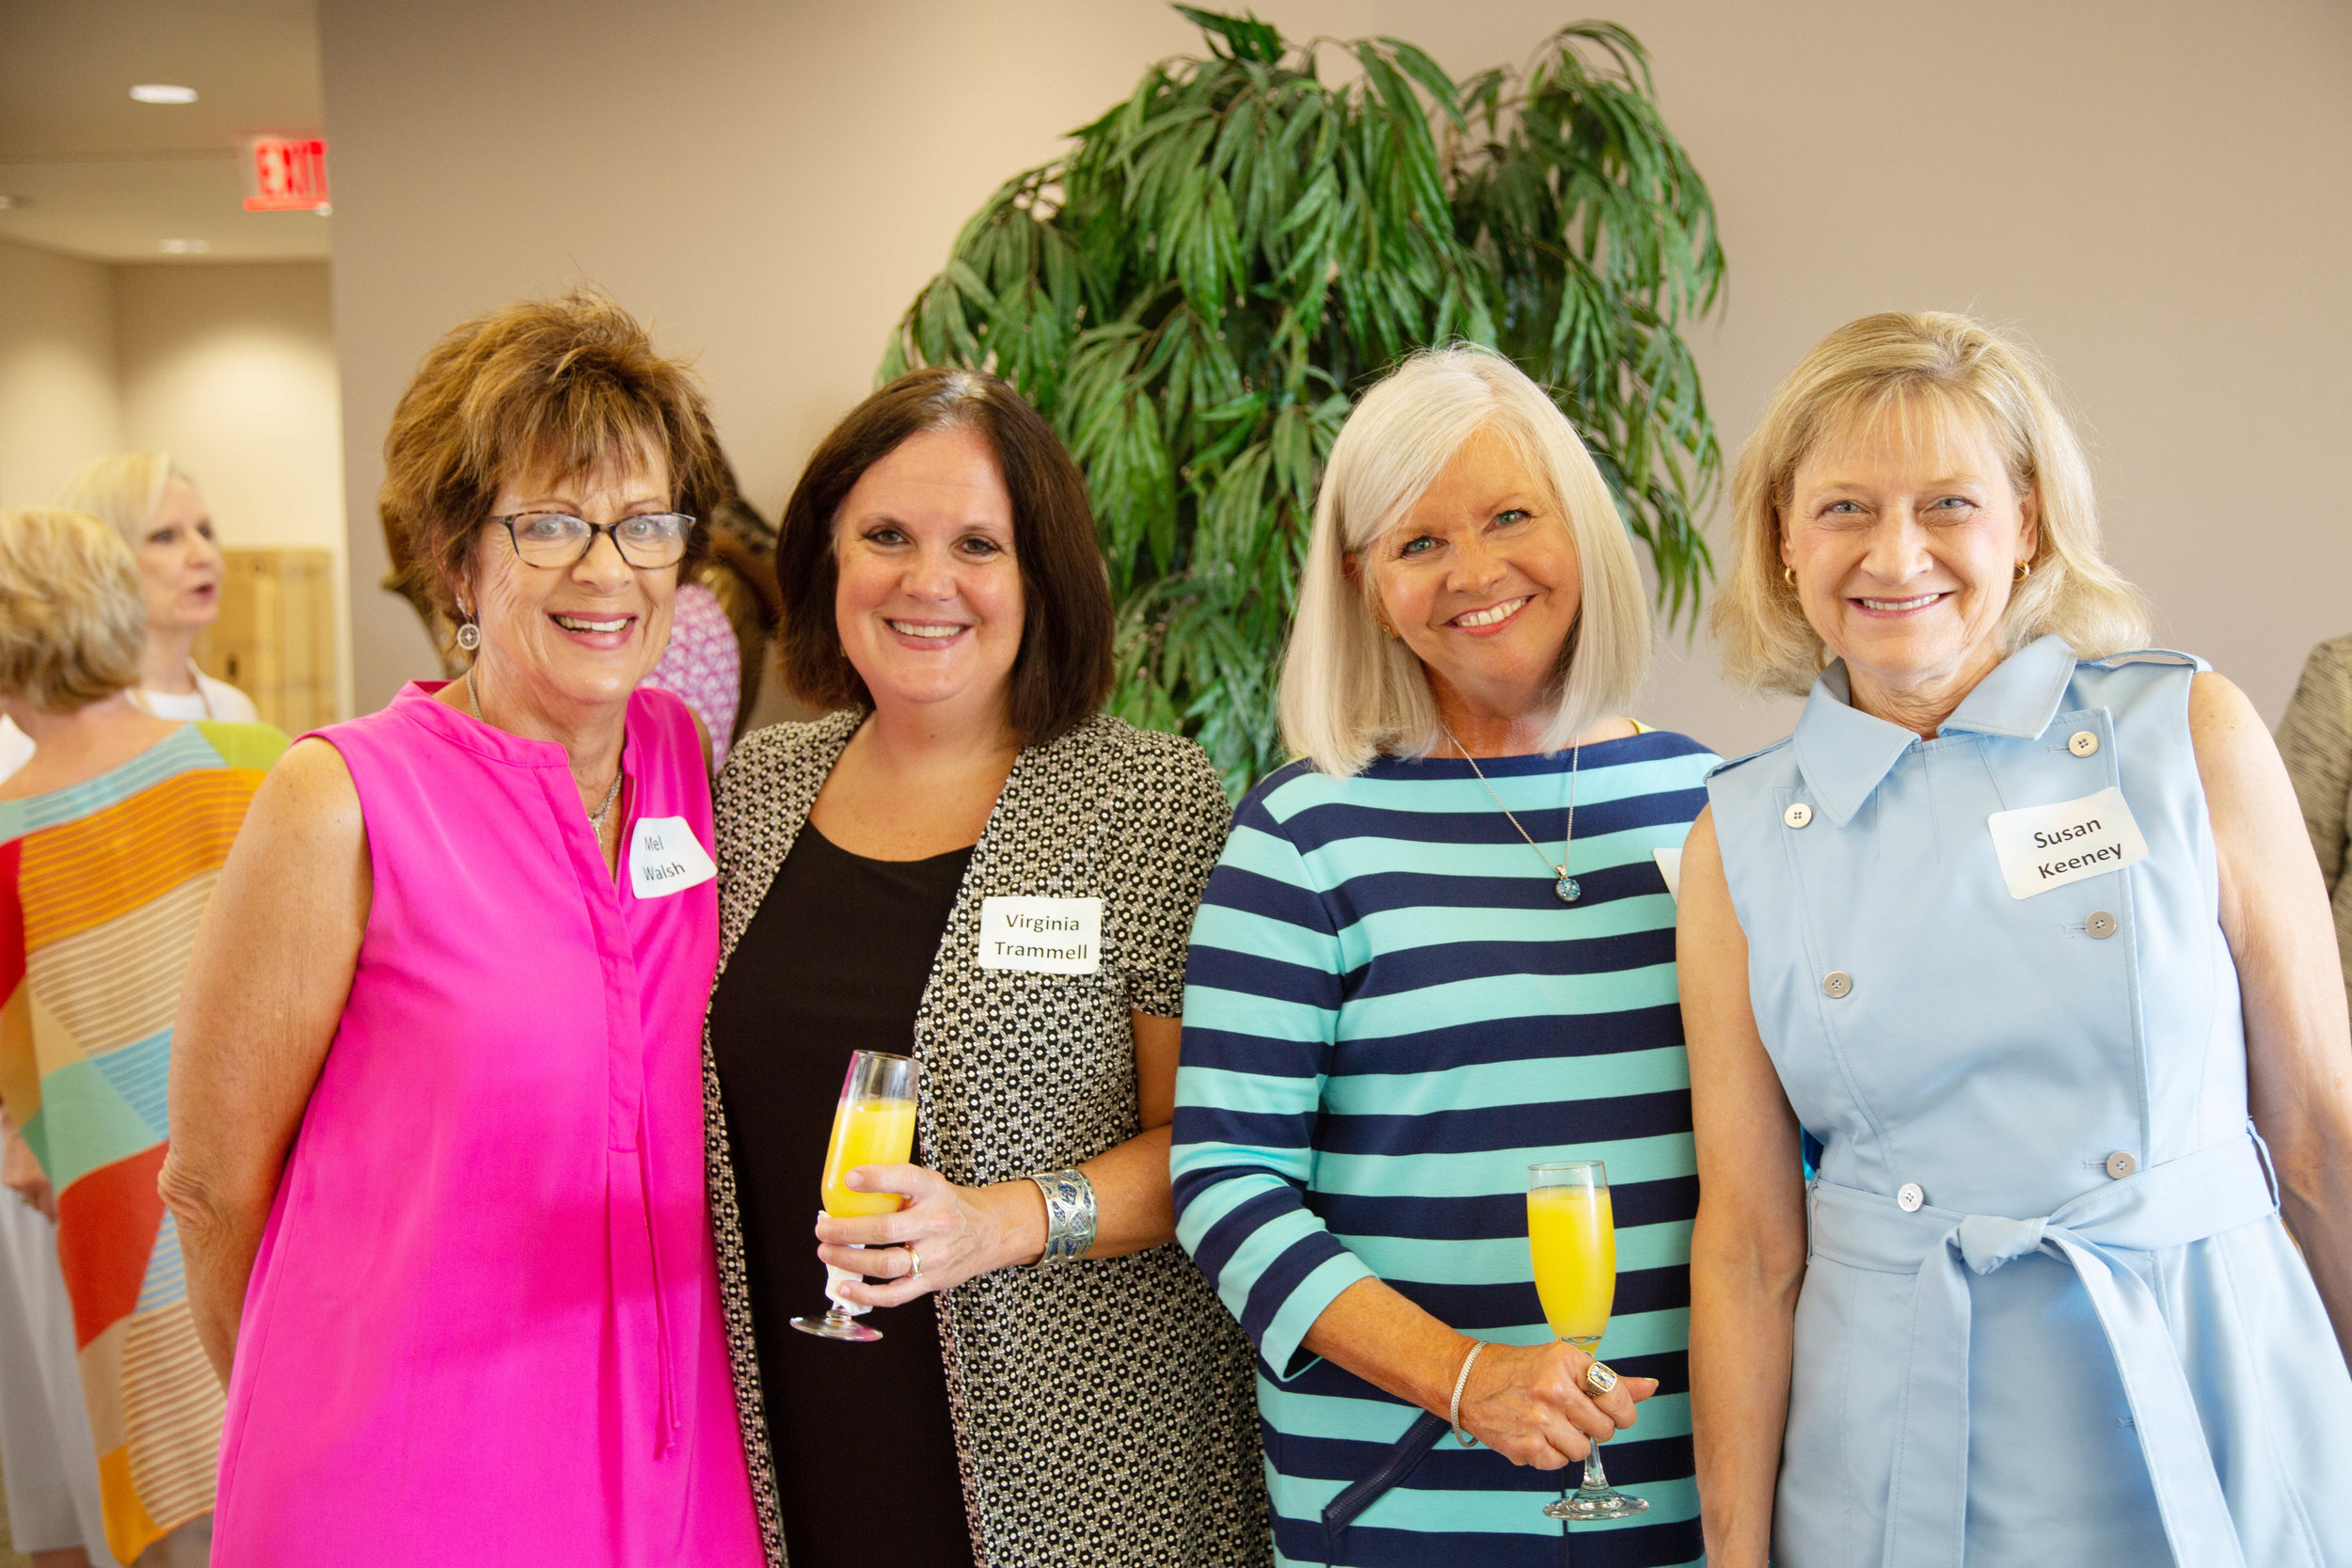 Mel Walsh, Virginia Trammell, Judge Sherry Jackson Hawkins and Dr. Susan Keeney